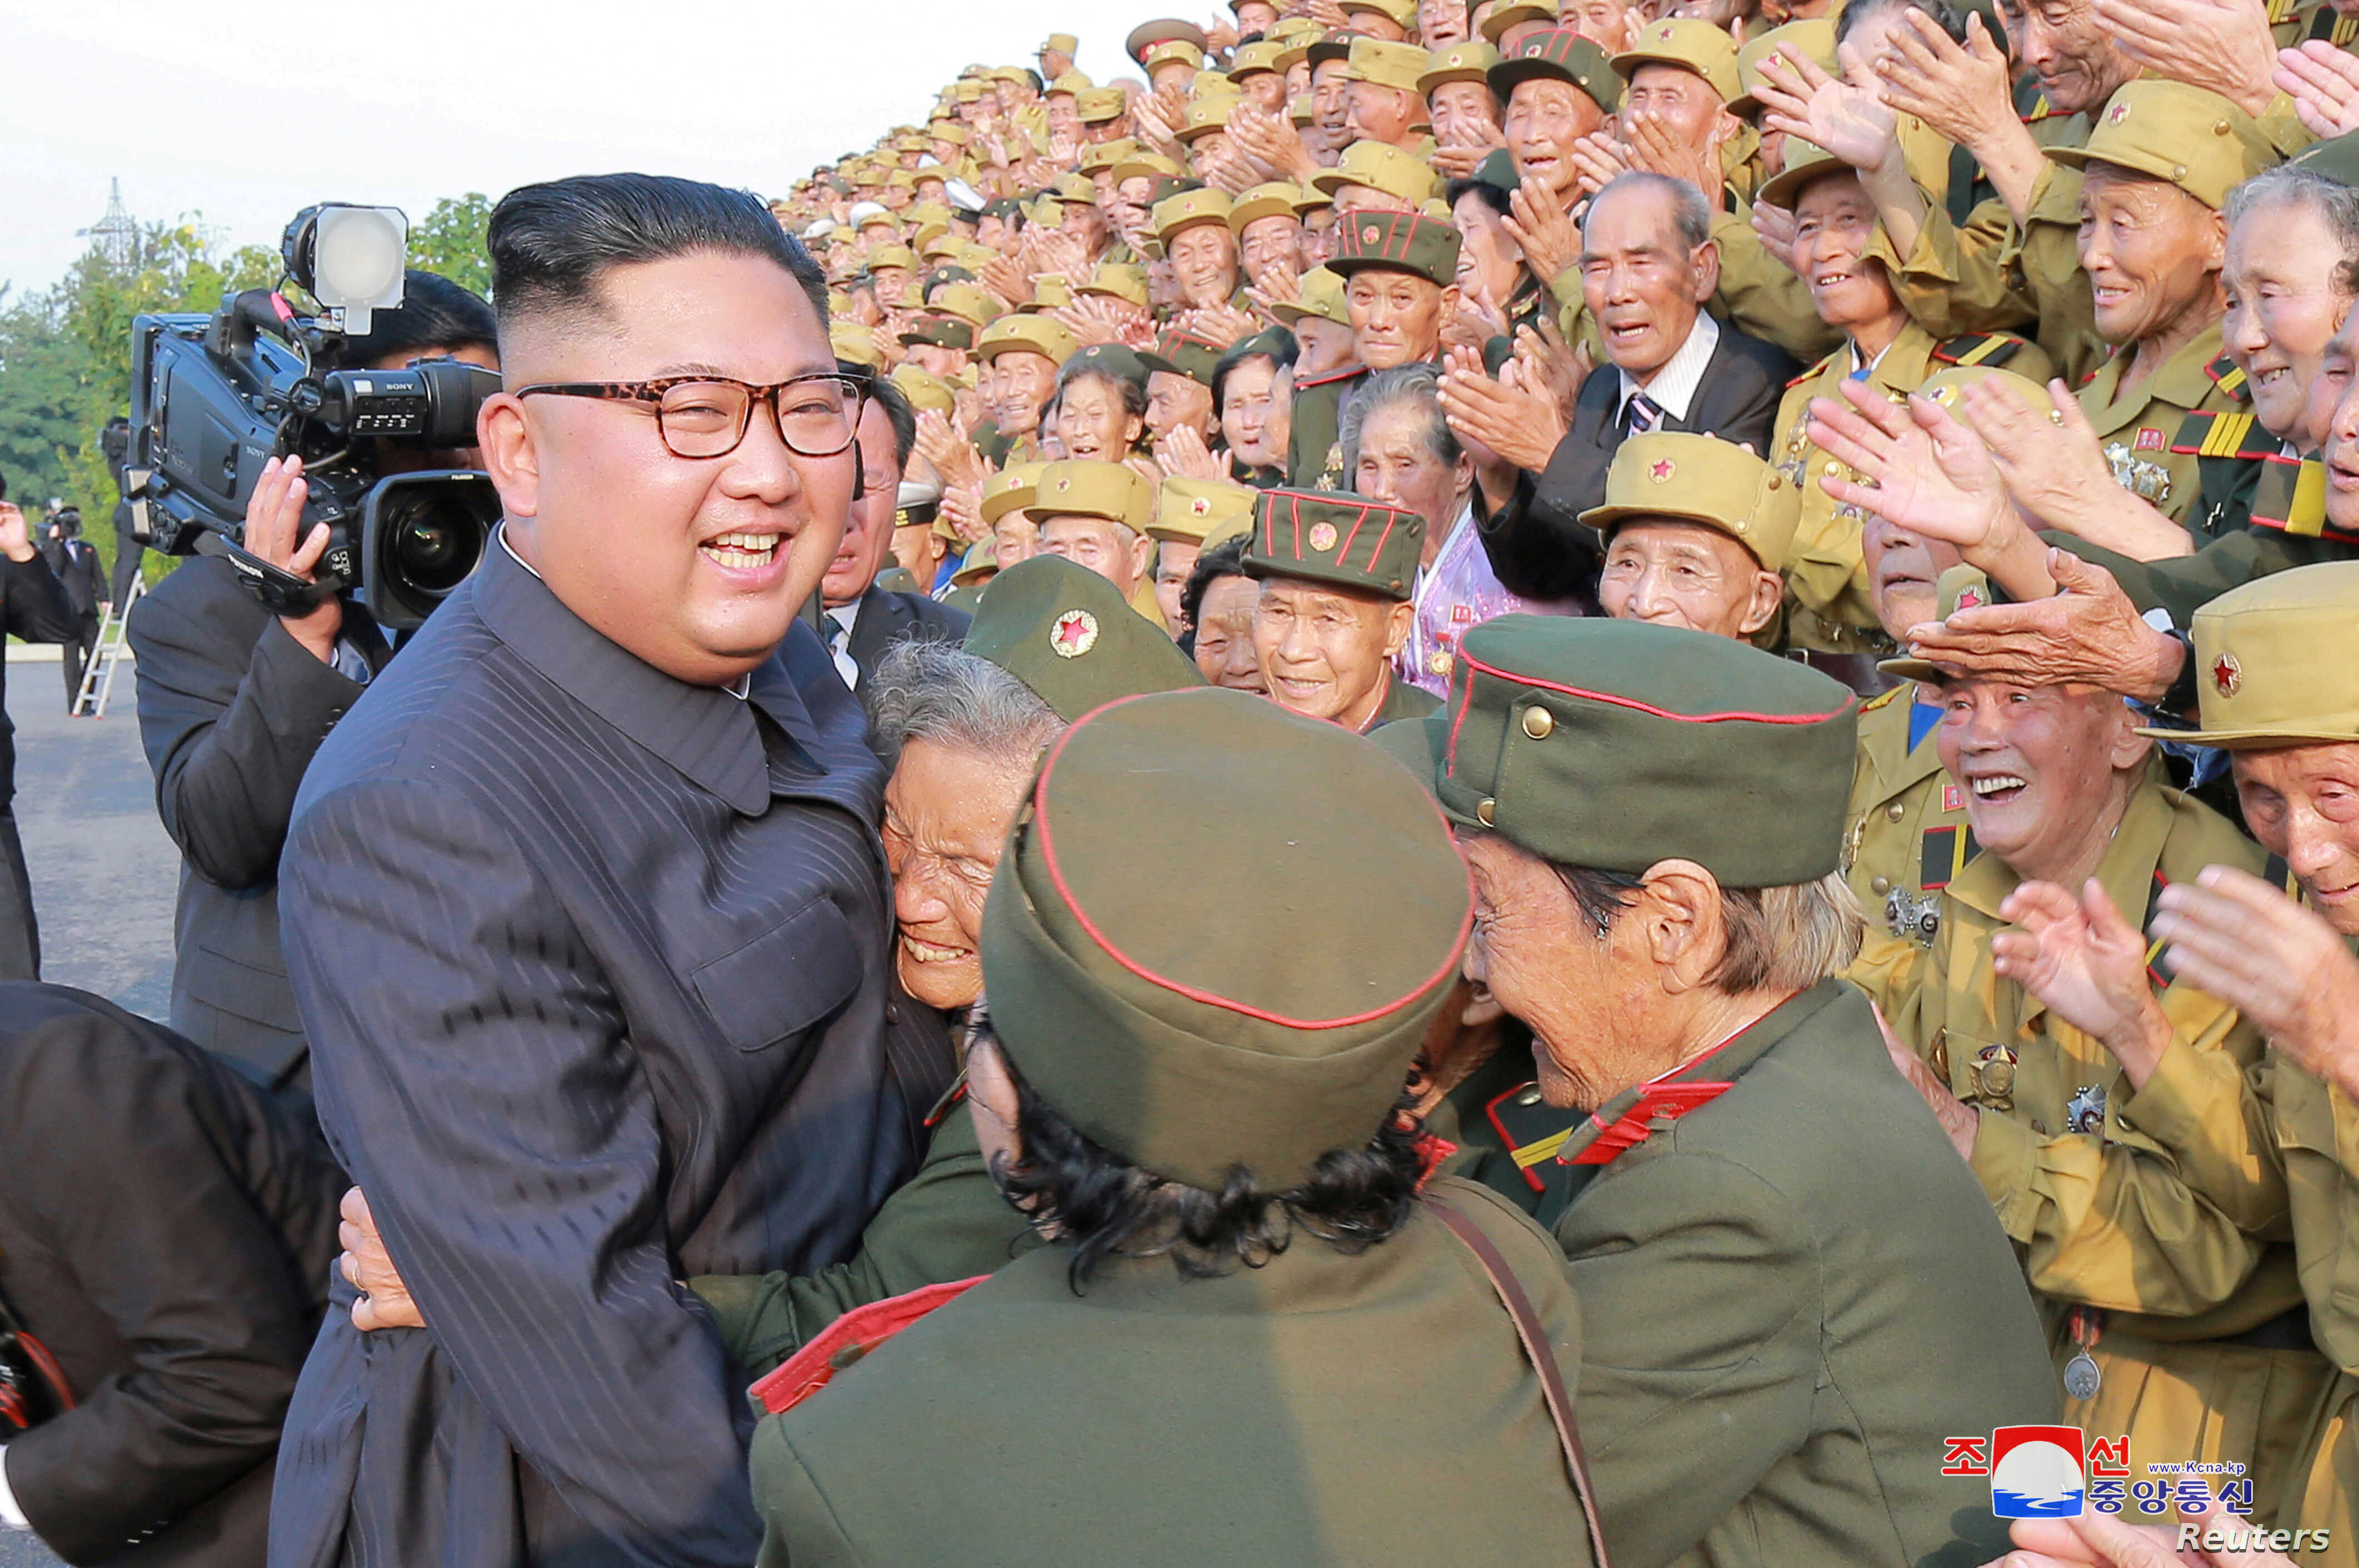 North Korean leader Kim Jong Un meets participants of the 5th National Conference of War Veterans in this undated photo released by North Korea's Korean Central News Agency (KCNA) on July 27, 2018.